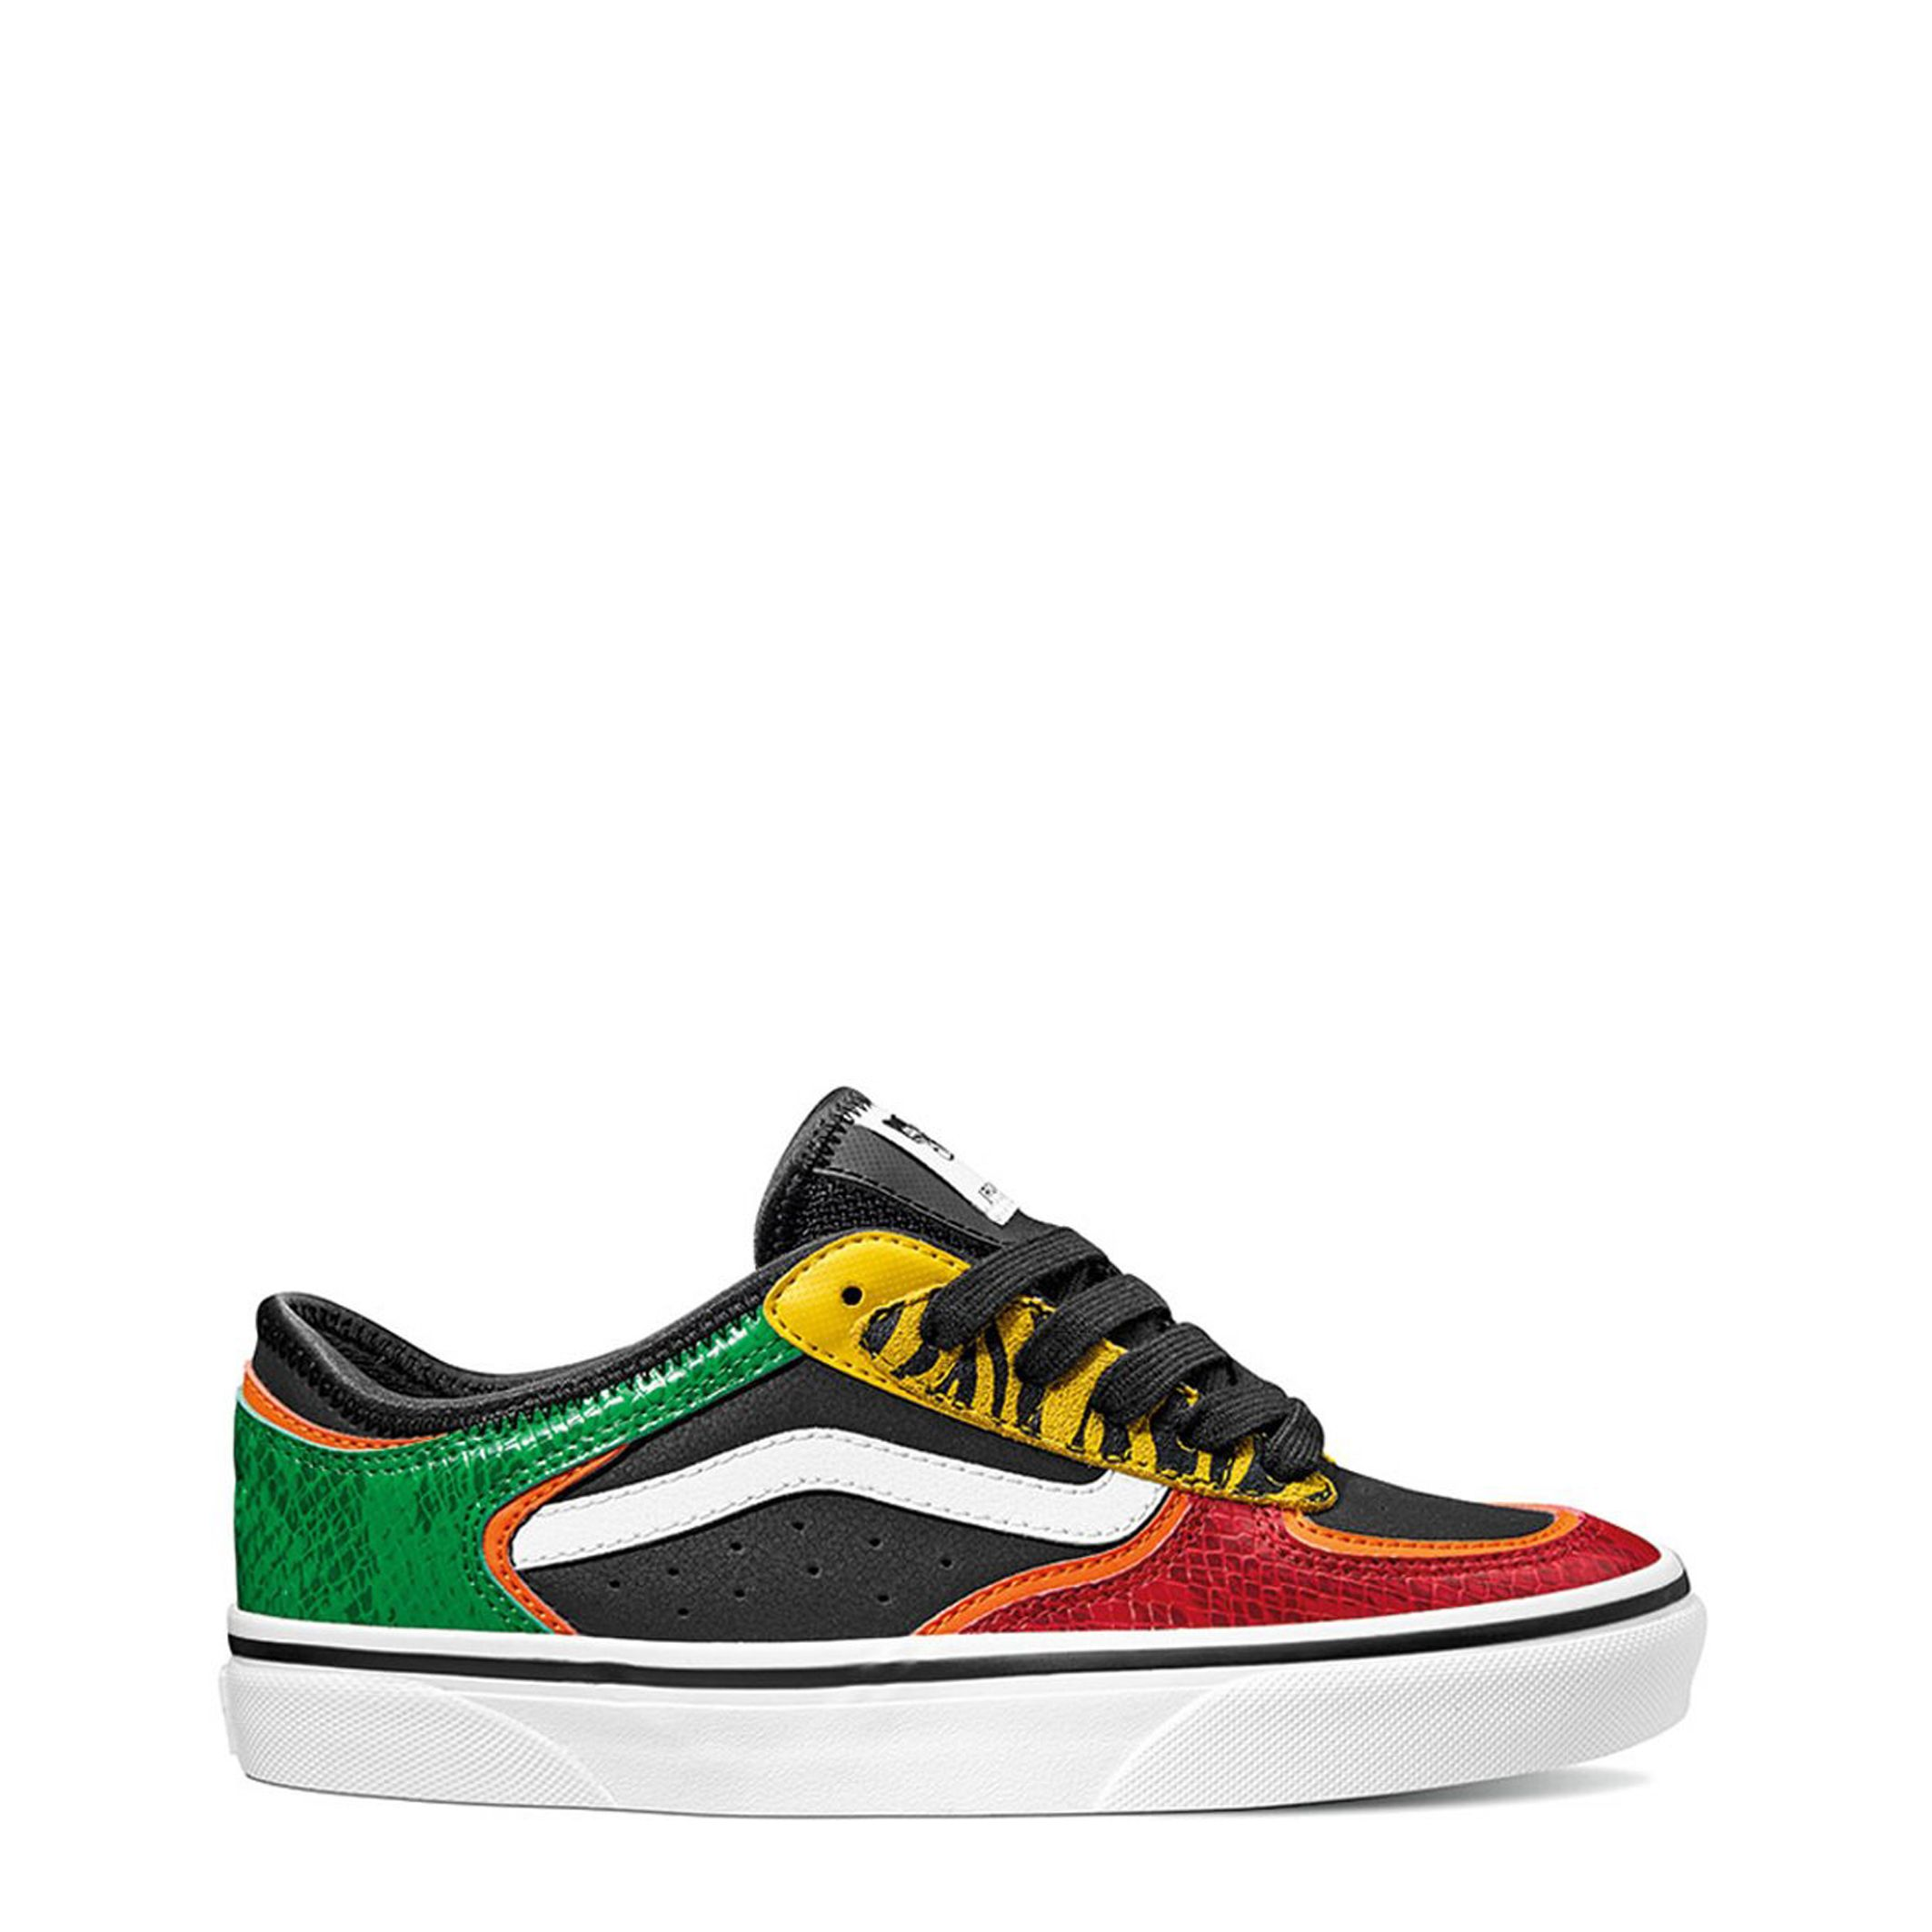 Vans - ROWLEY-CLASSIC | You Fashion Outlet